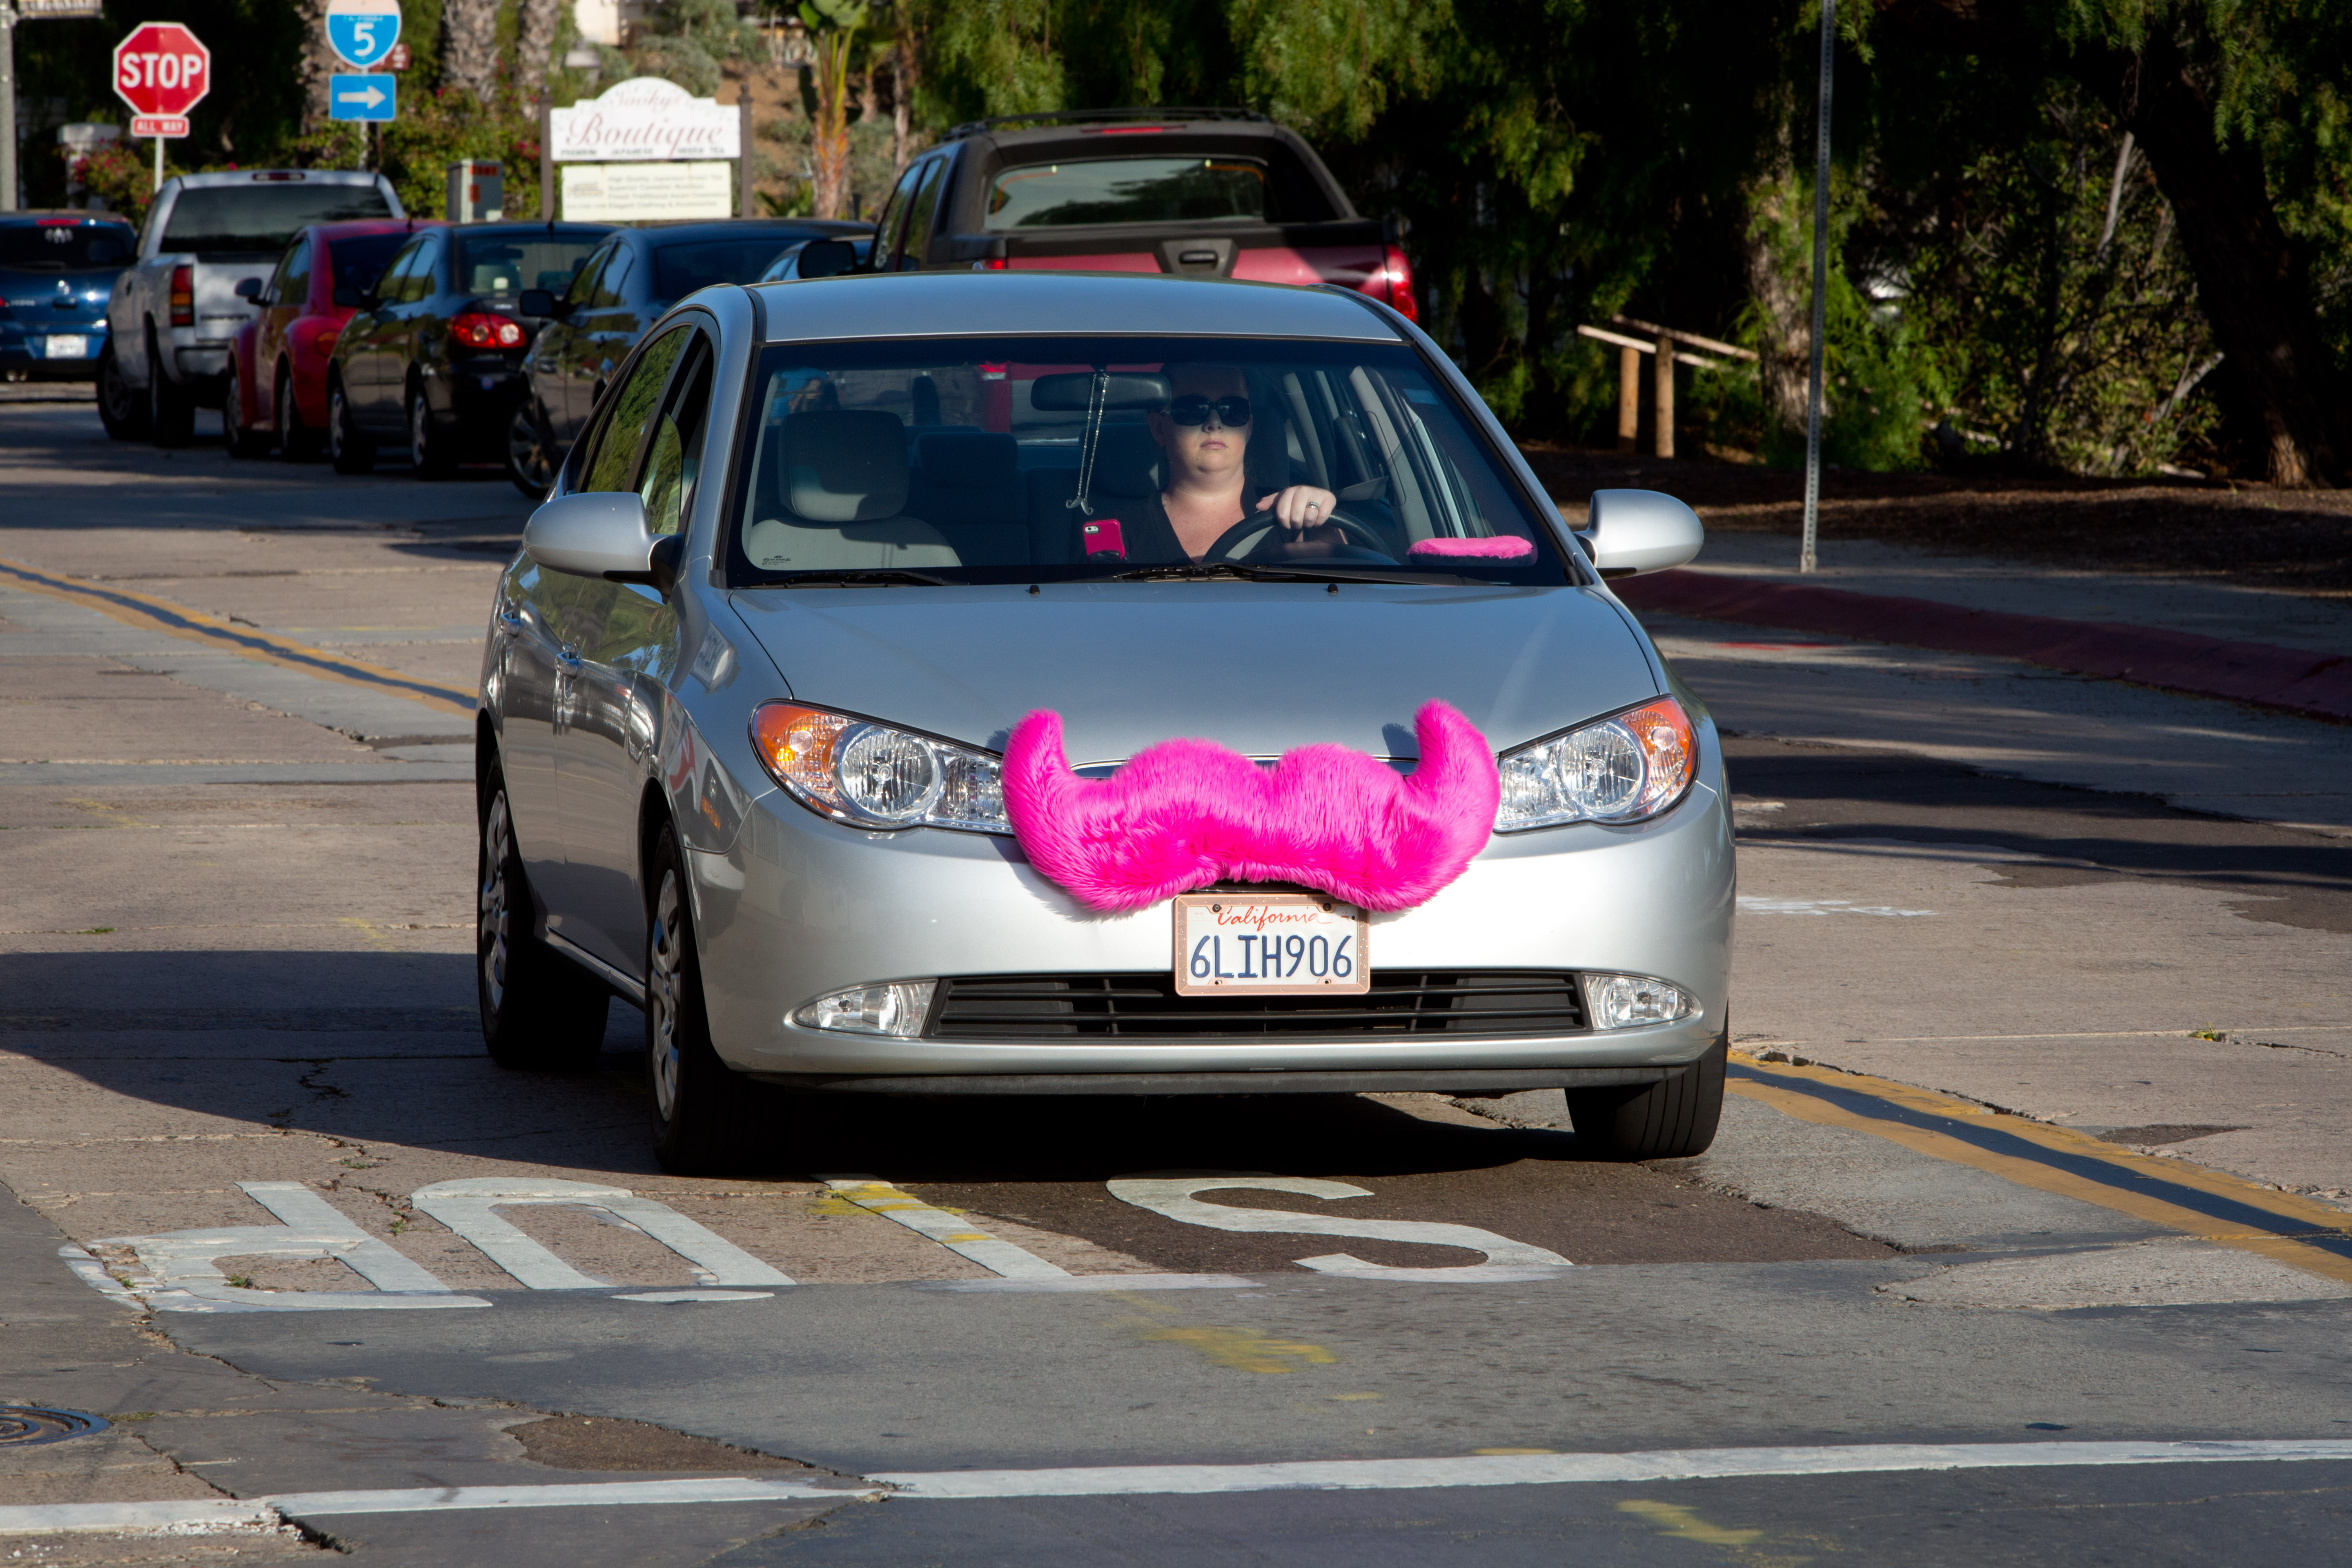 A woman is driving a car for the rideshare company Lyft with a fake jumbo pink mustache that attaches to the grille of the car, in June 2014.